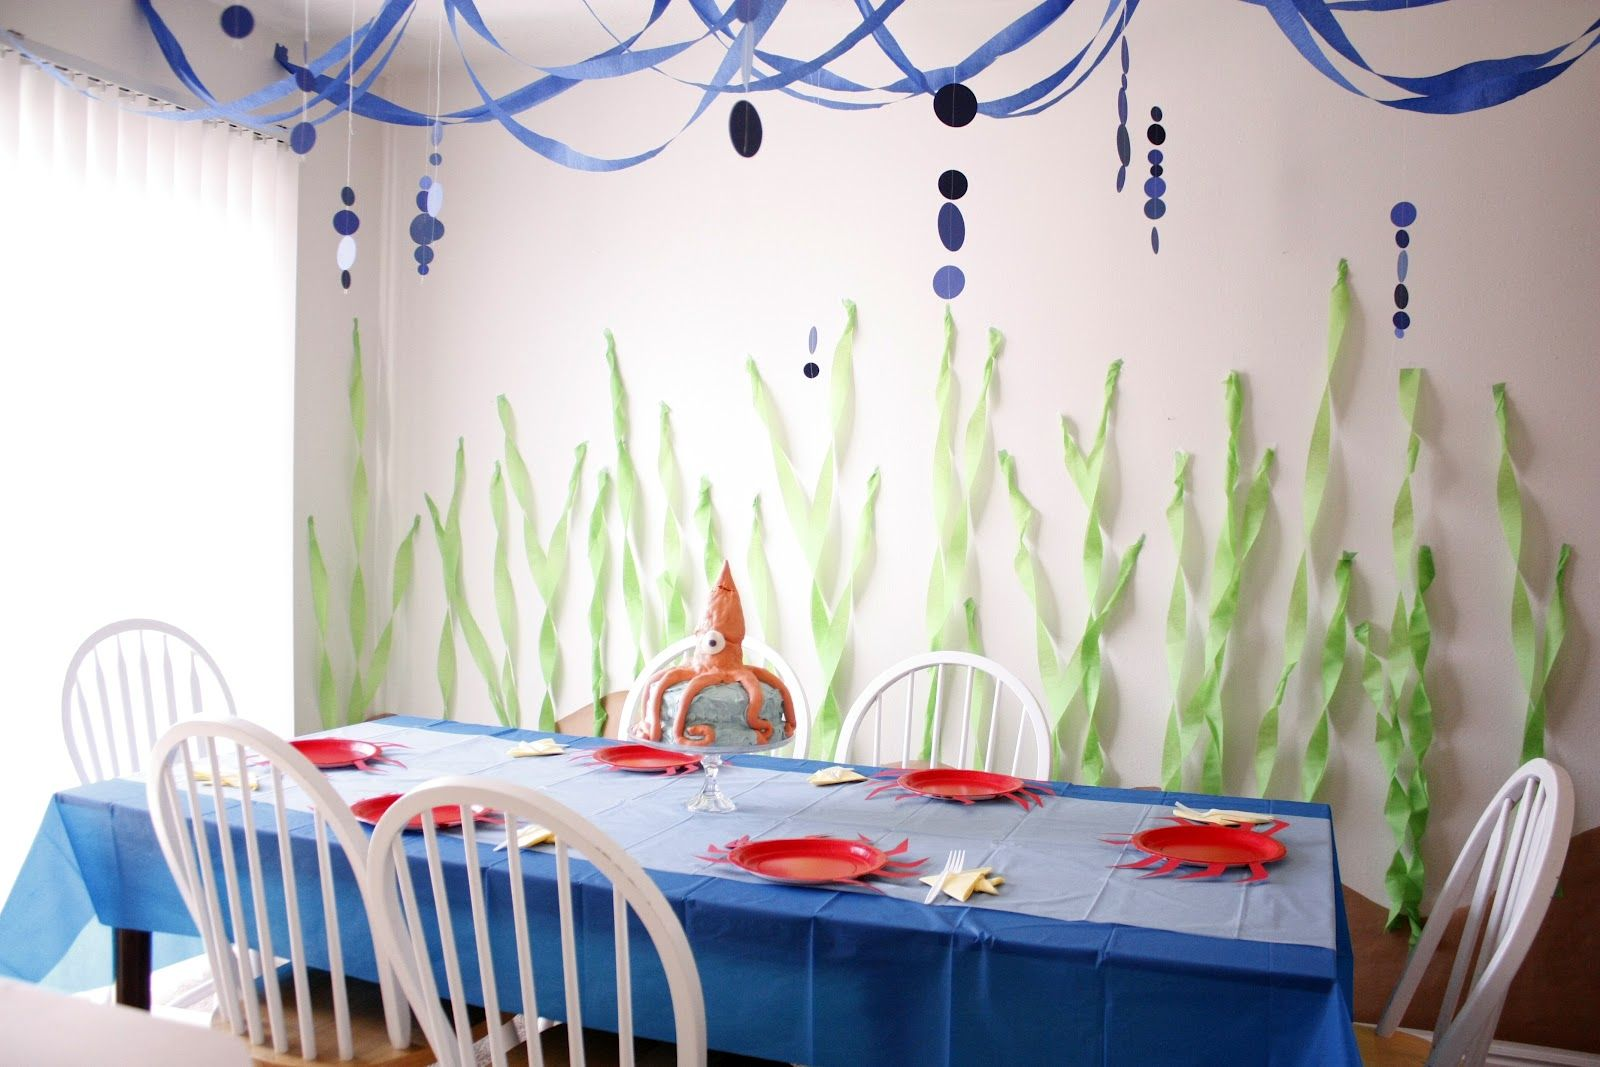 Creative Way To Use Crepe Paper Streamers For A Little Mermaid Or